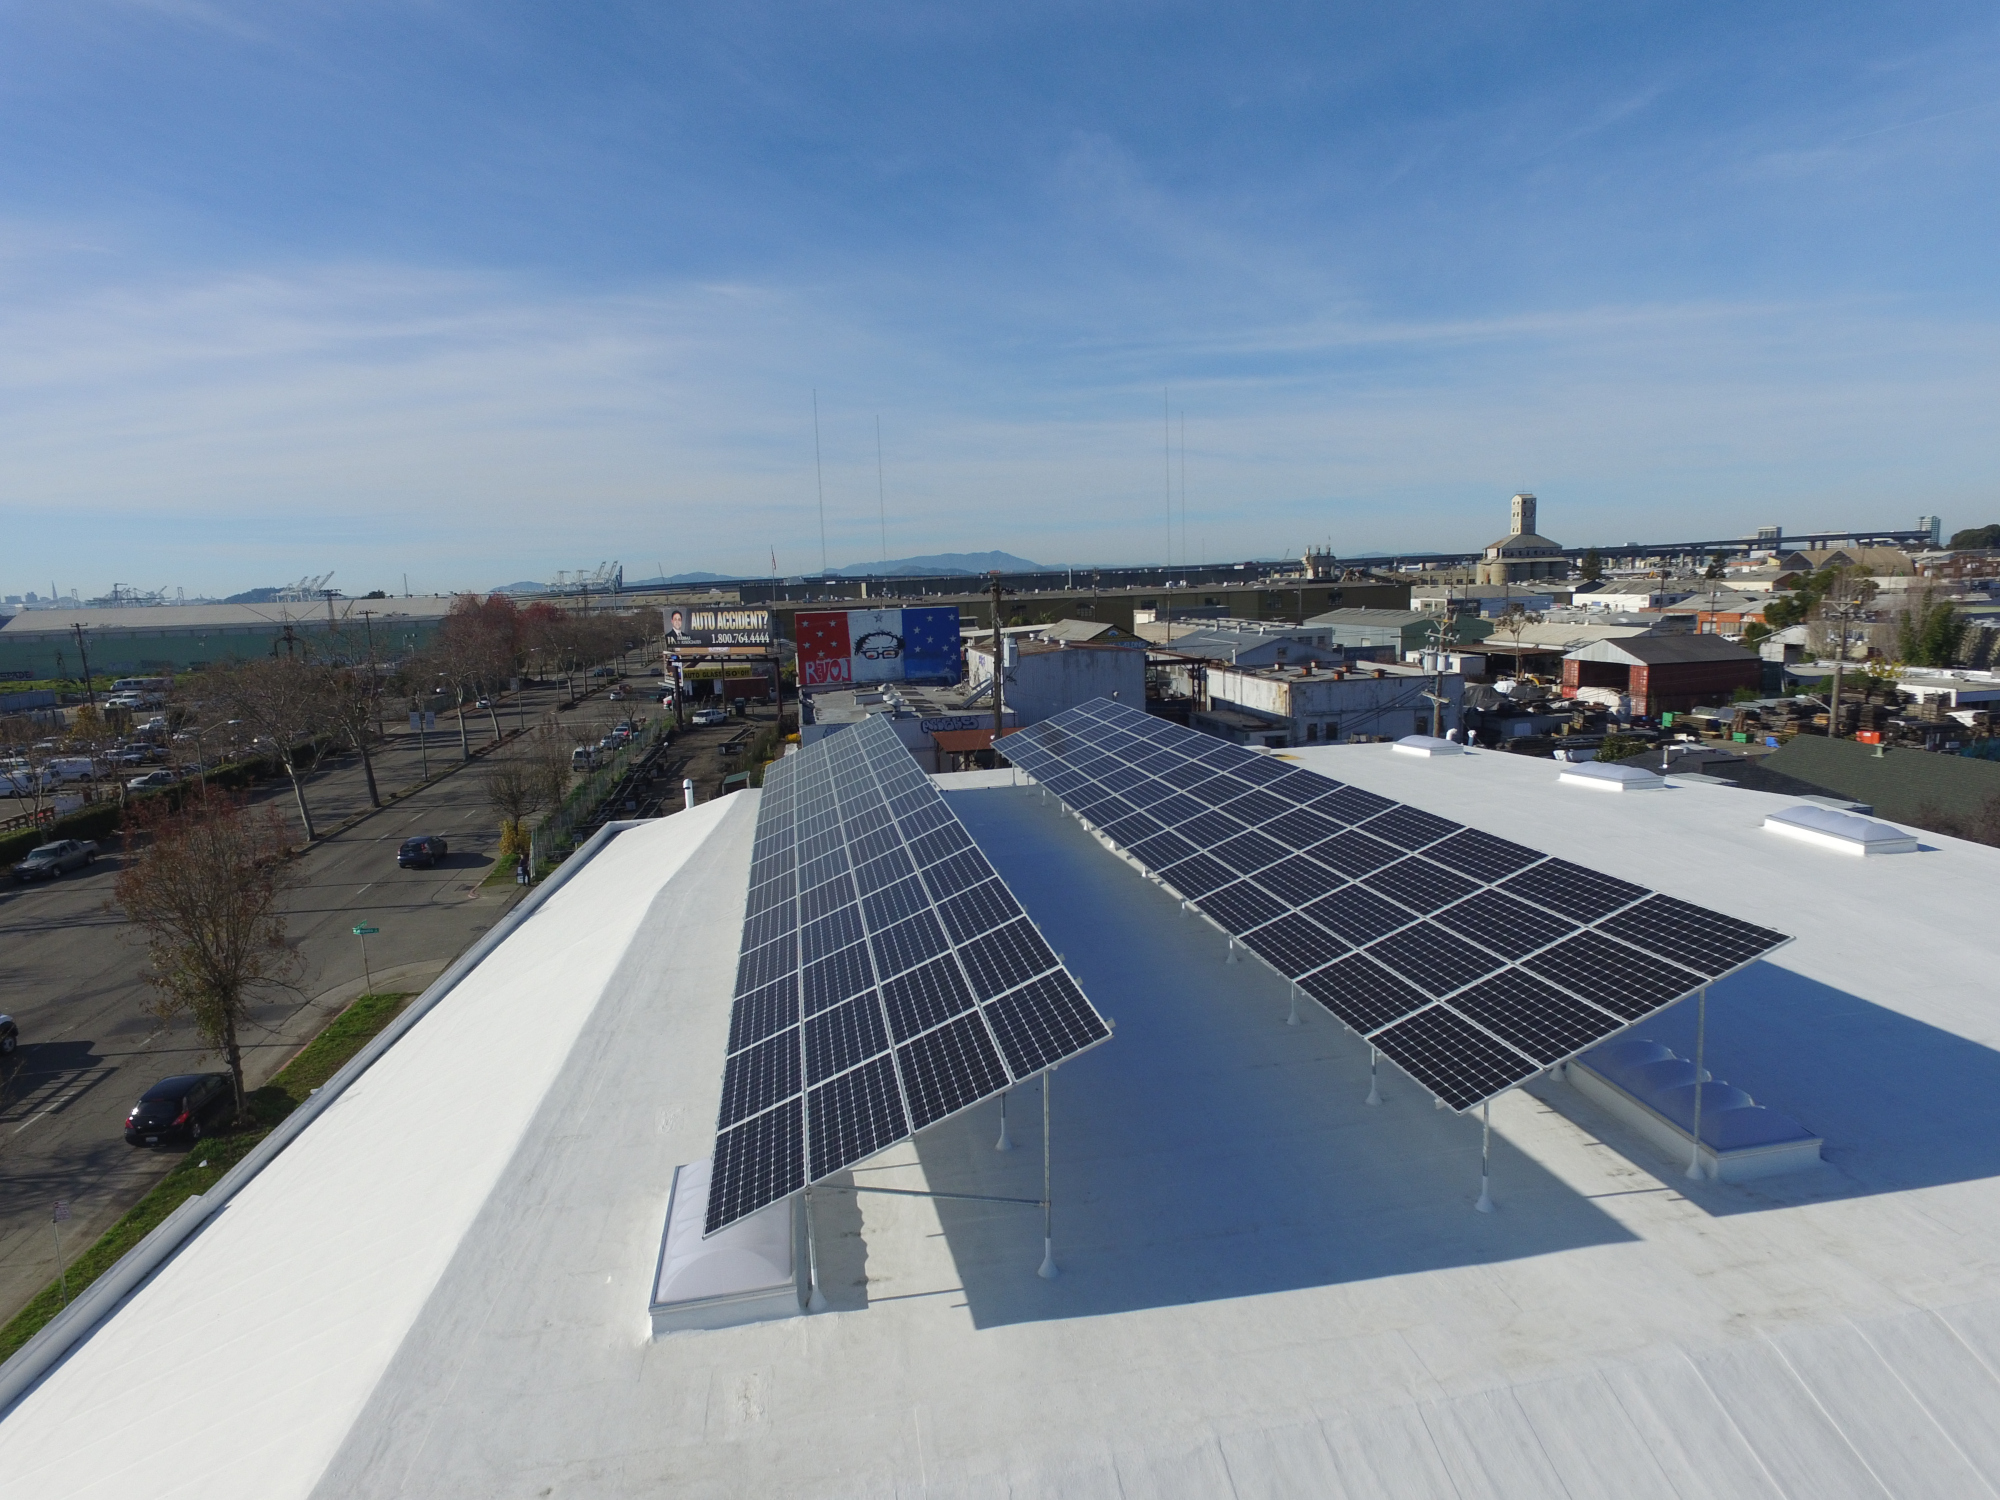 View of commercial solar installation at the Subterranean wine storage facility in Oakland, California